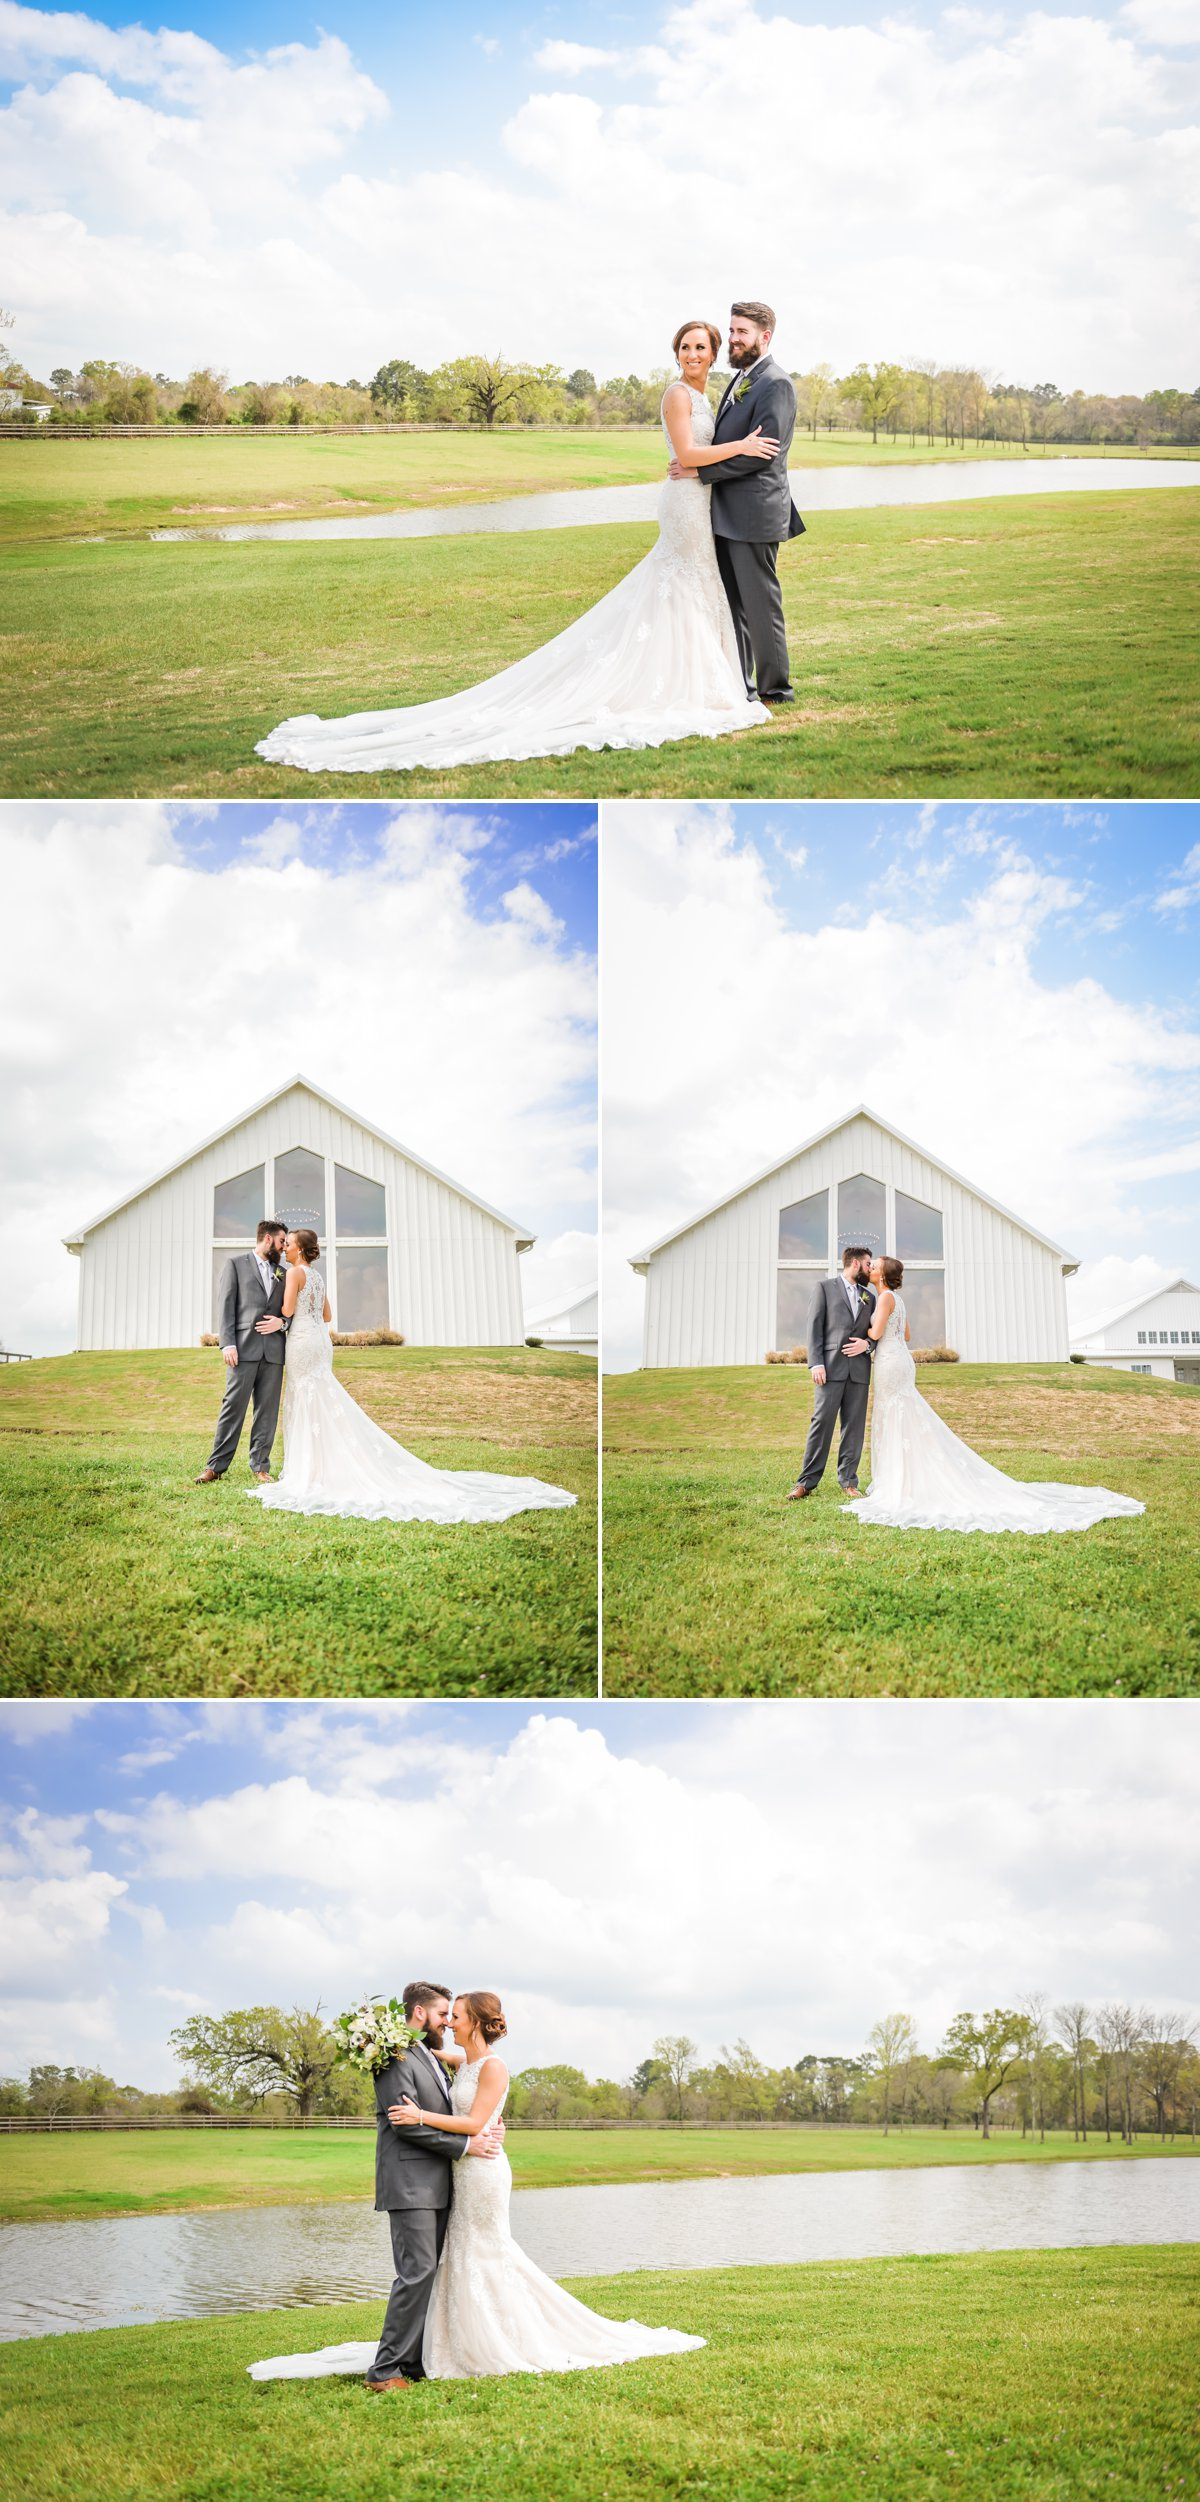 The Farmhouse Wedding Venue by Nate Messarra Photography